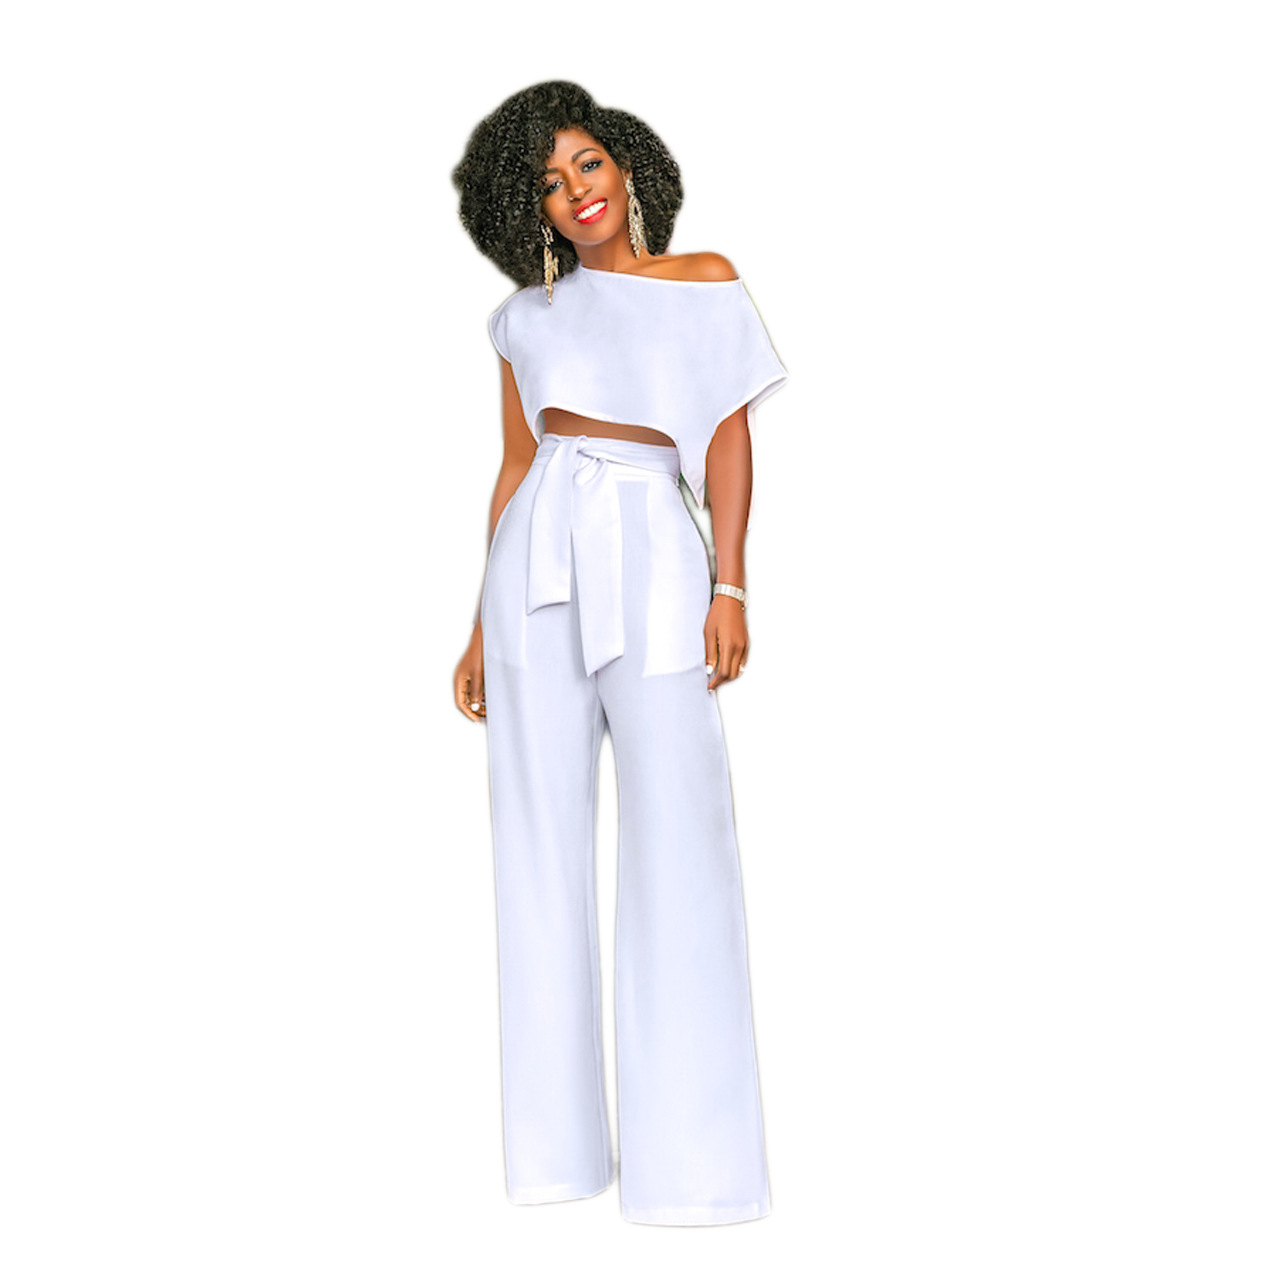 2019 Runway Women One Shoulder Crop Top Solid Pants Sets Summer Short Sleeve Crop Top Wide Leg Trousers 2 PCs Lace Up Outfits in Women 39 s Sets from Women 39 s Clothing